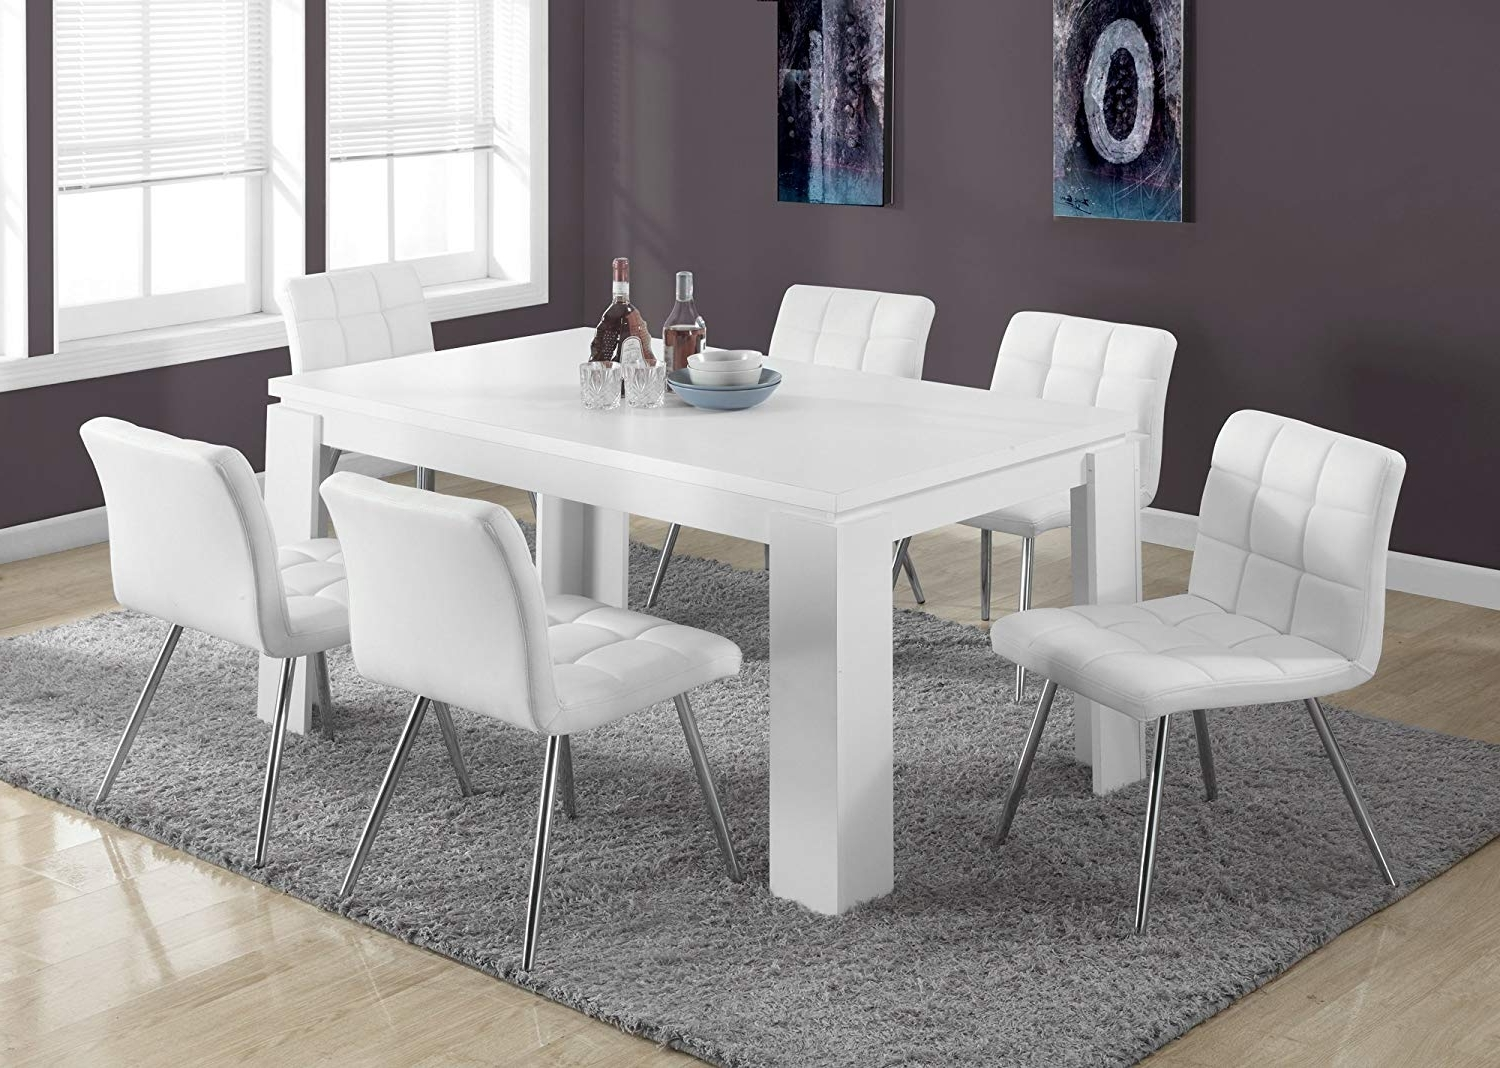 Shiny White Dining Tables Within Most Recently Released Amazon – Monarch Specialties I 1056, Dining Table, White Hollow (View 8 of 25)